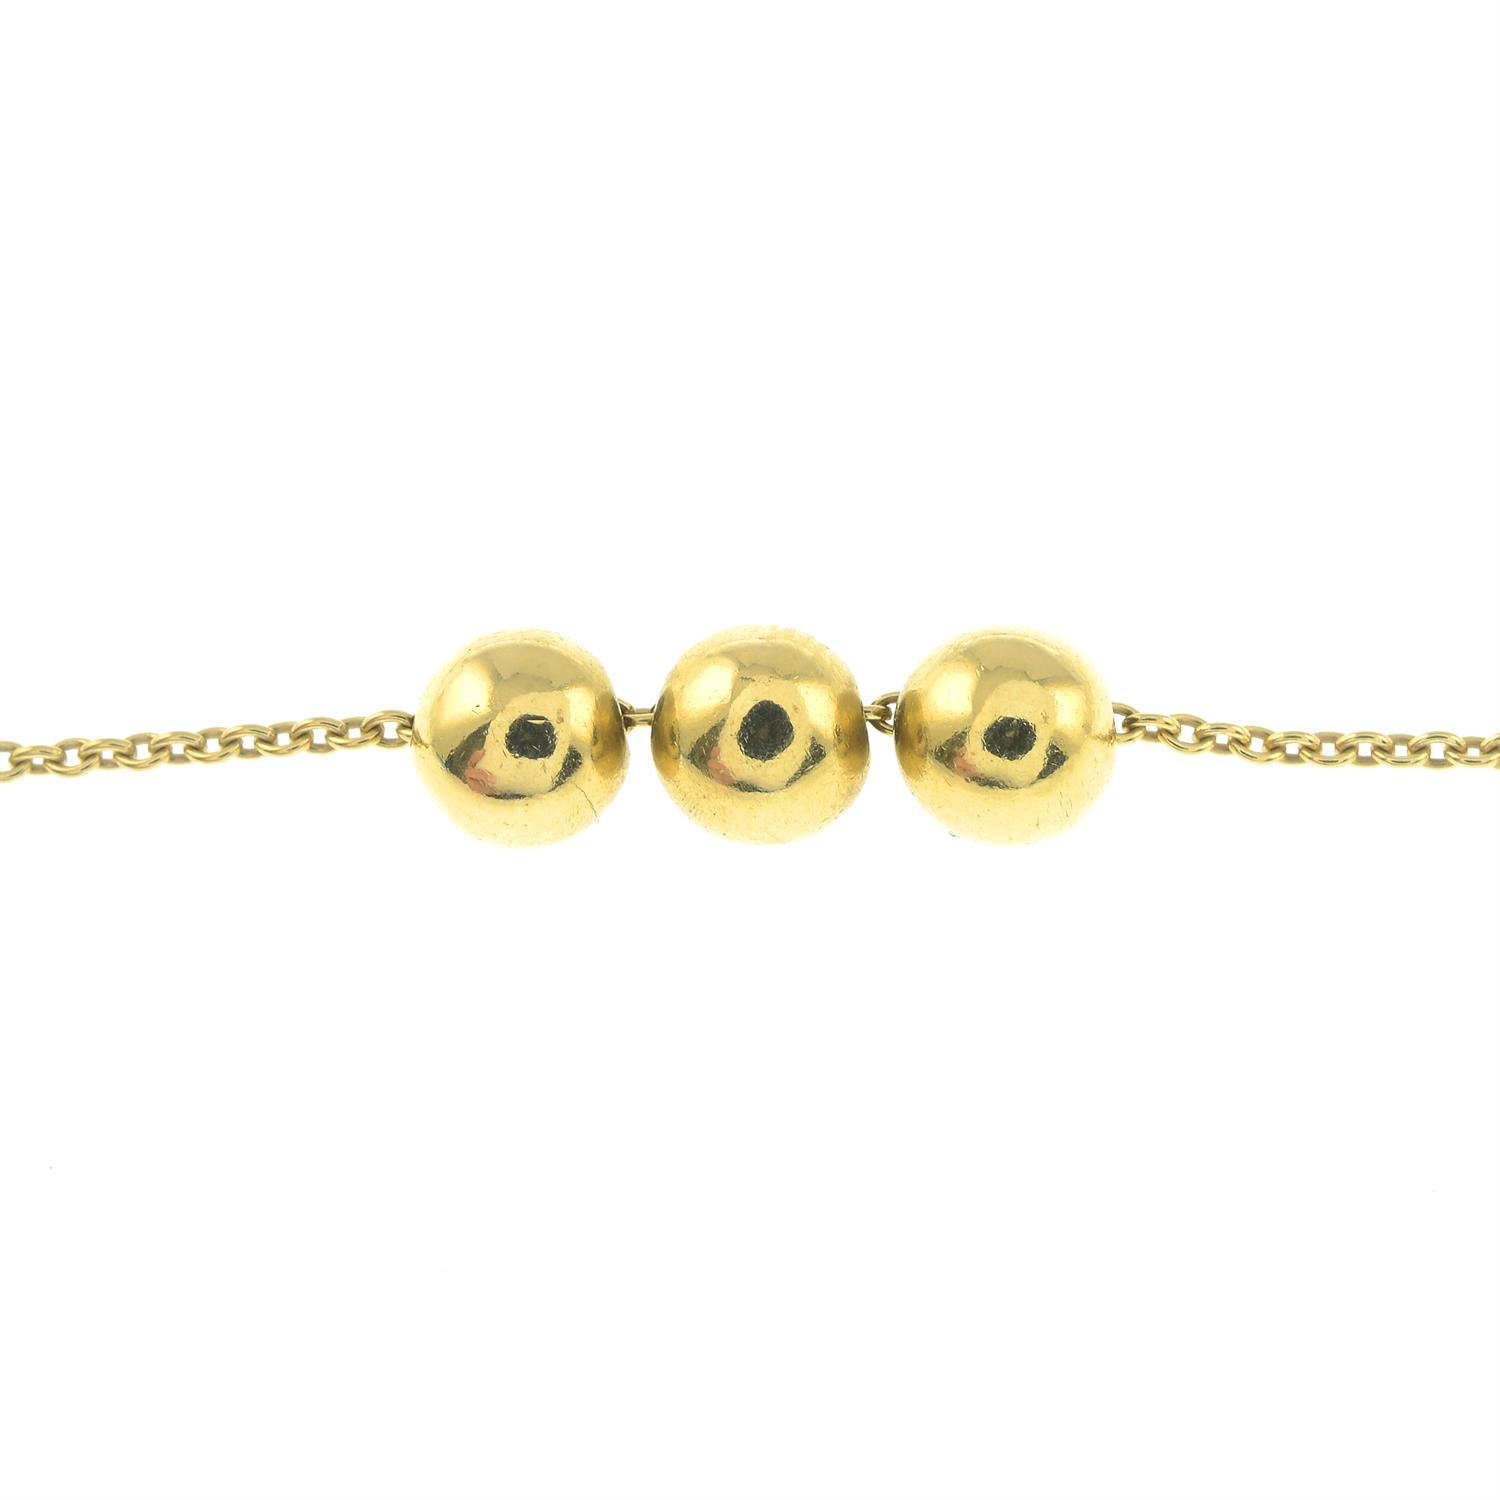 An 18ct gold necklace, with free-moving brilliant-cut diamond ball highlights, by Boodles & - Image 2 of 3